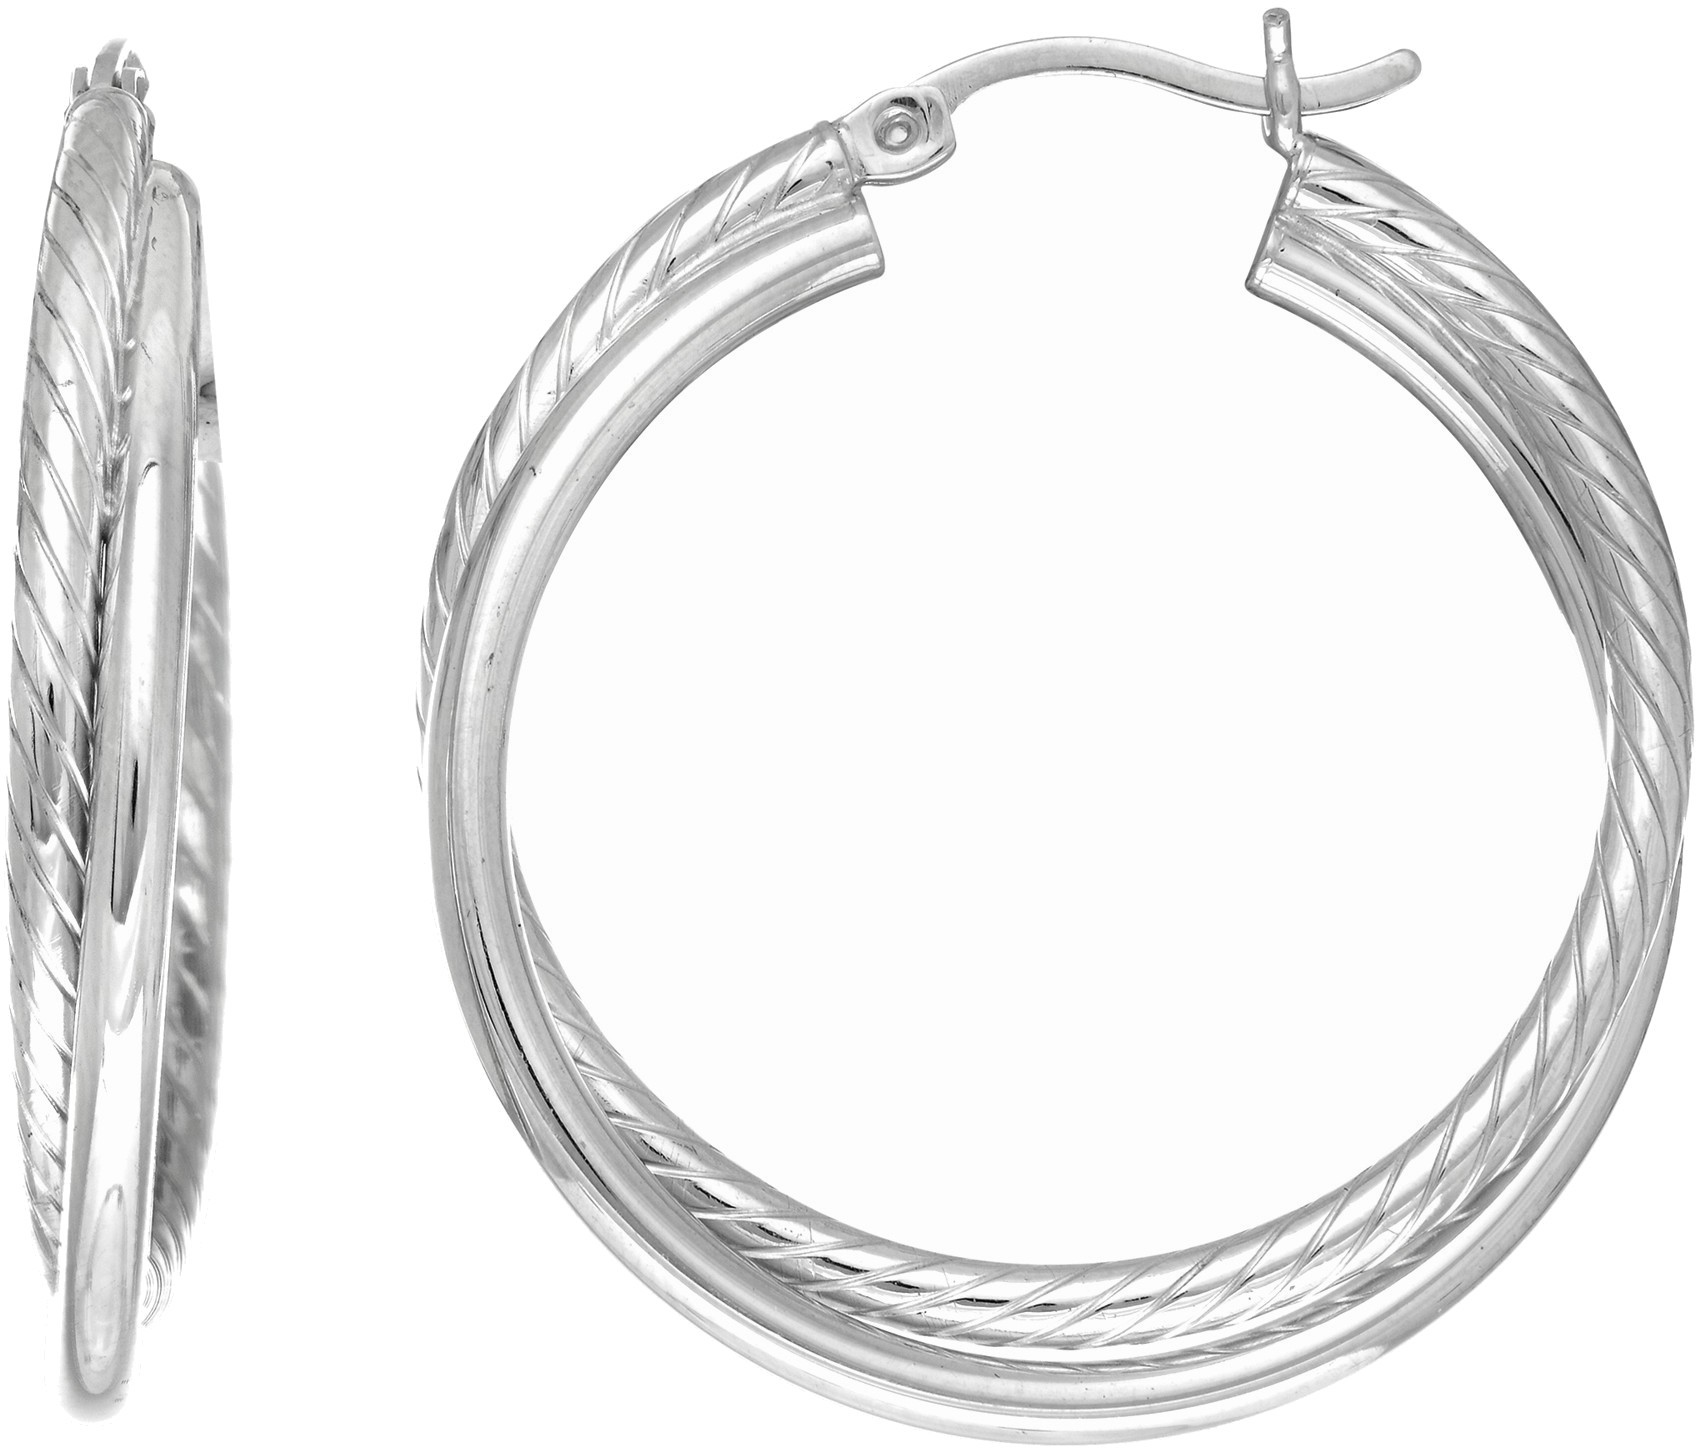 Silver Rhodium Plated Tube Hoop Earrings (BTAGE1773)